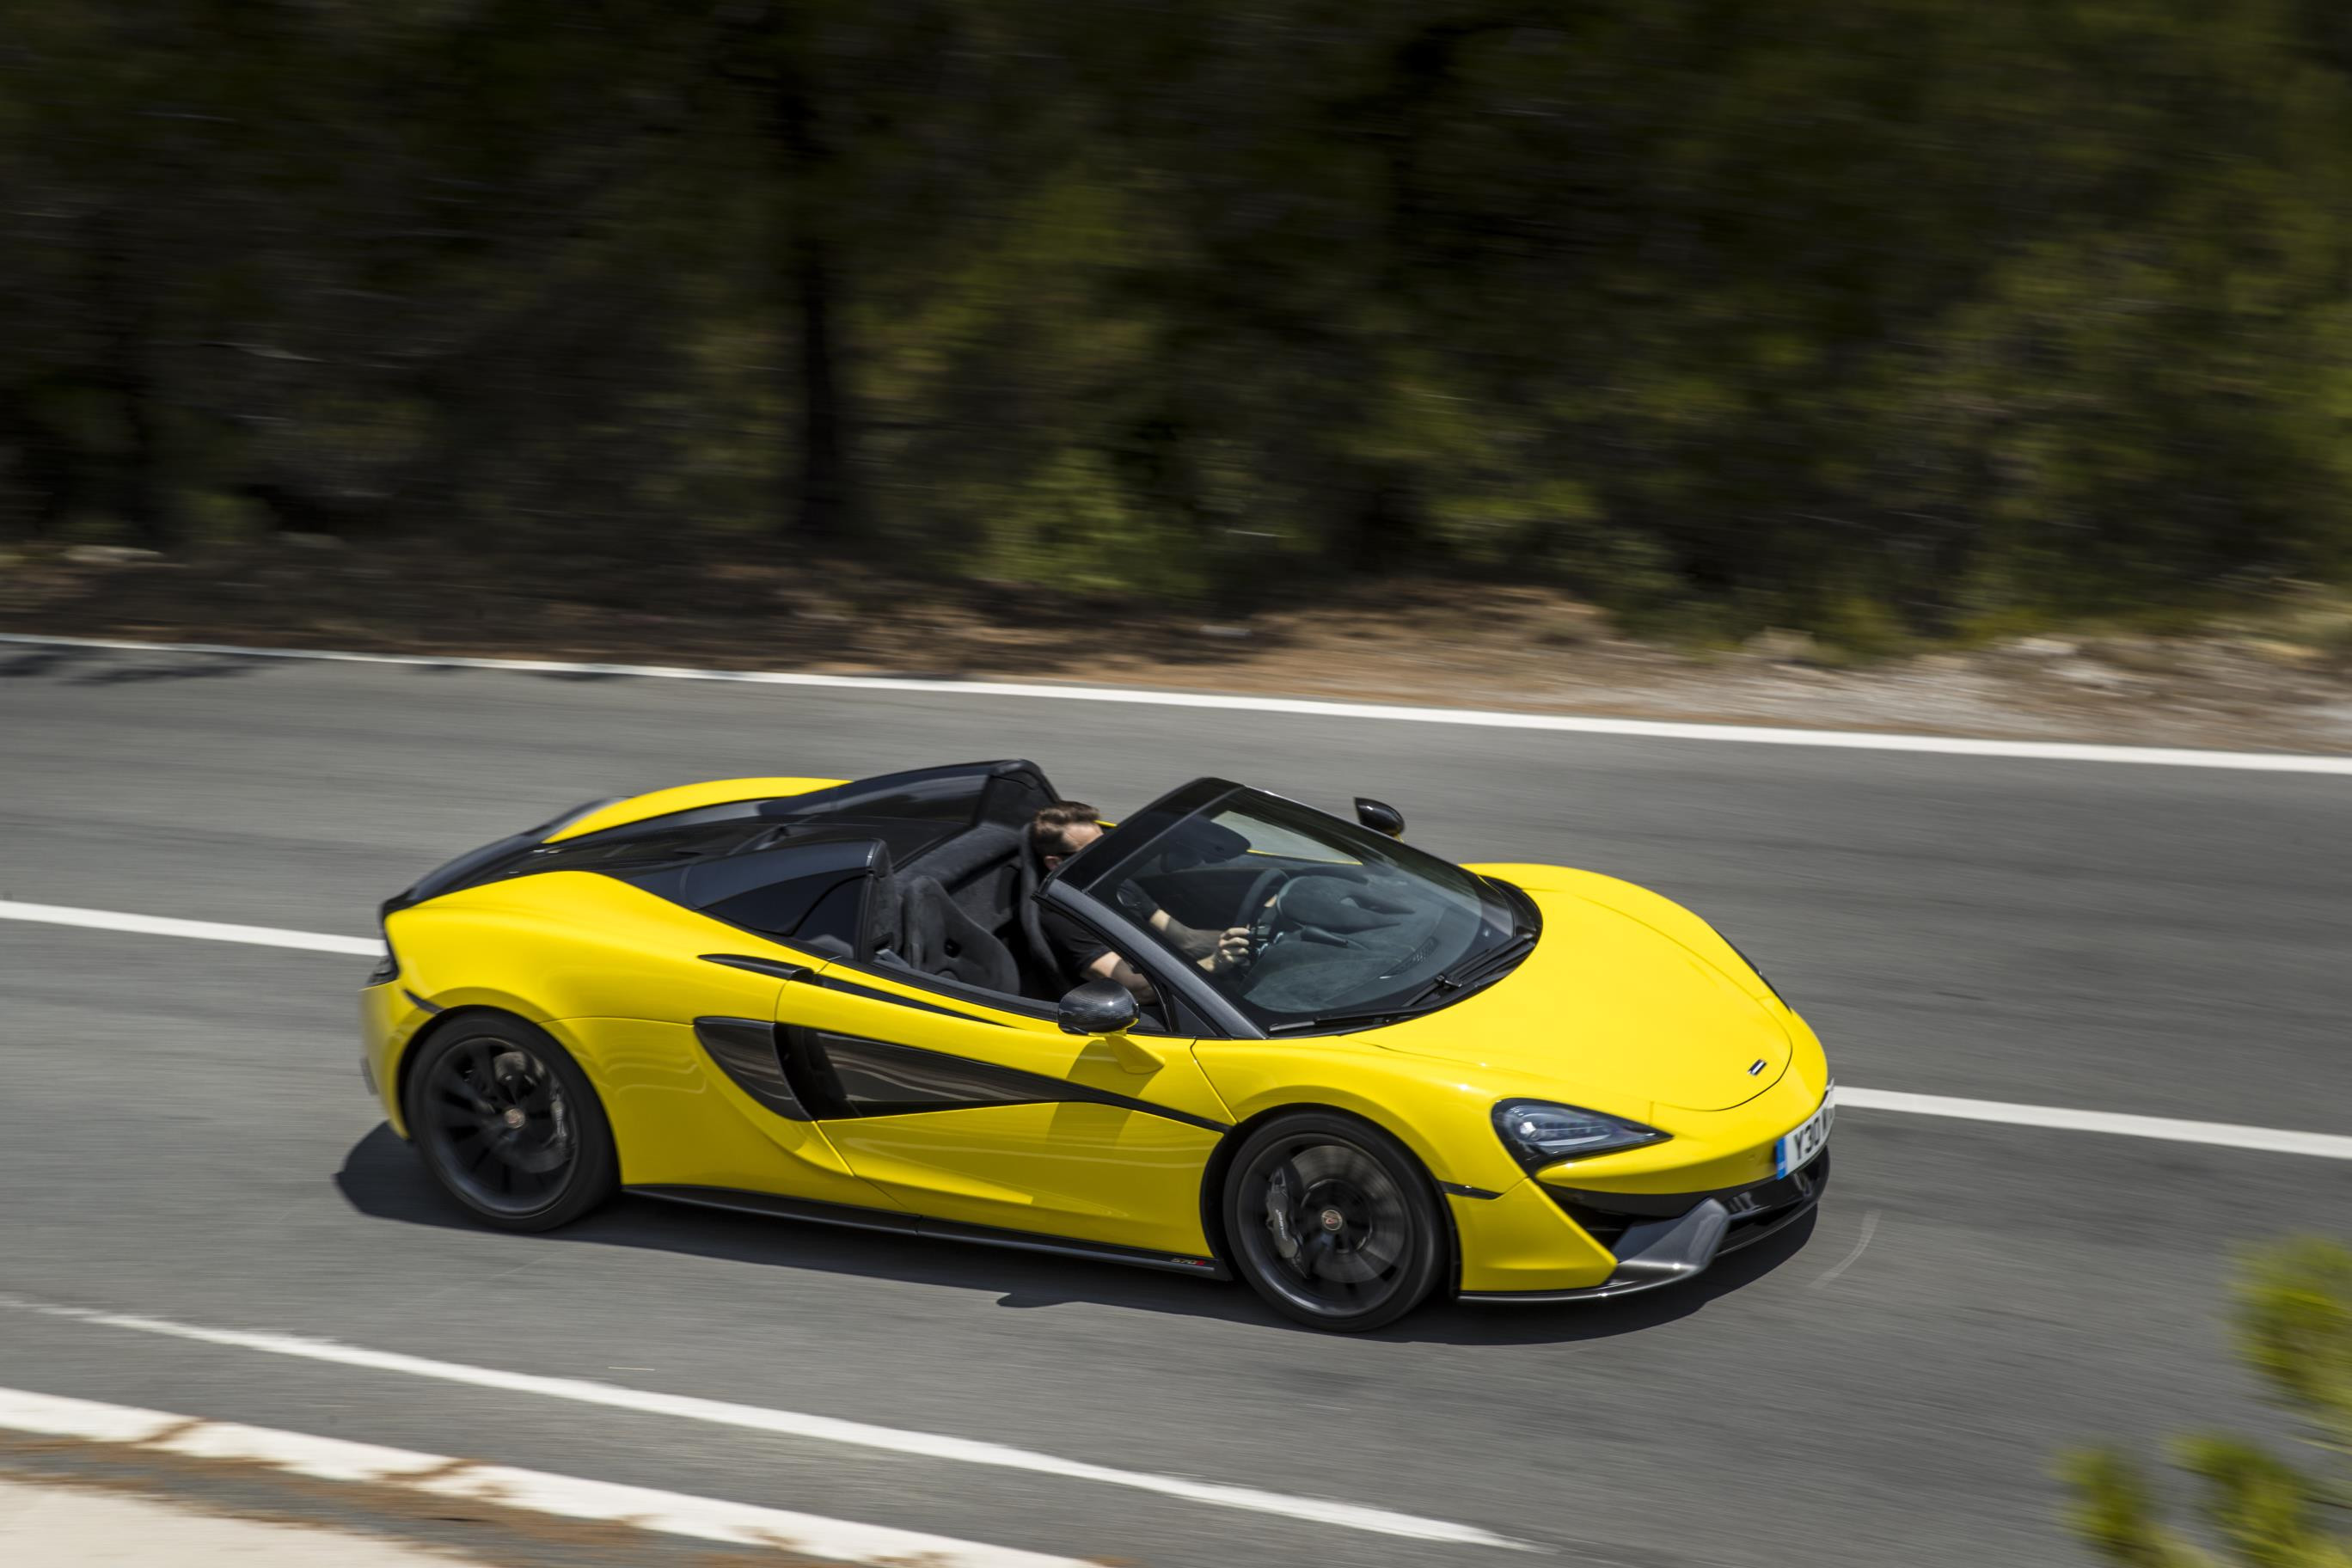 Bright yellow McLaren 570S driving down country lane